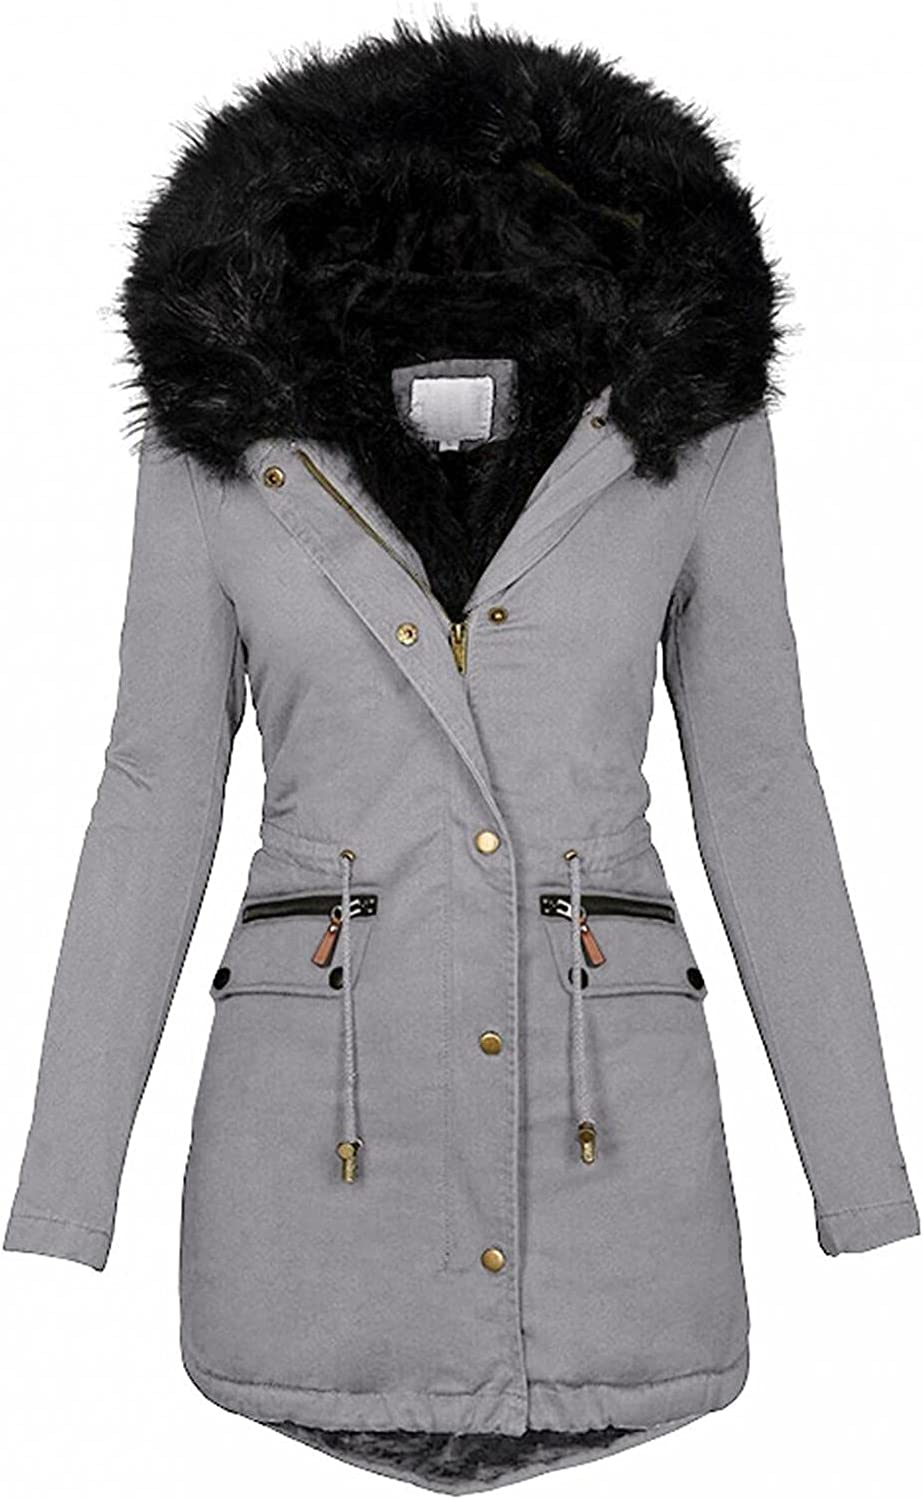 ManxiVoo Womens Plus Size Hooded Faux Fur Lined Coats Parkas Jackets Outerwear Overcoat with Drawstring Waist